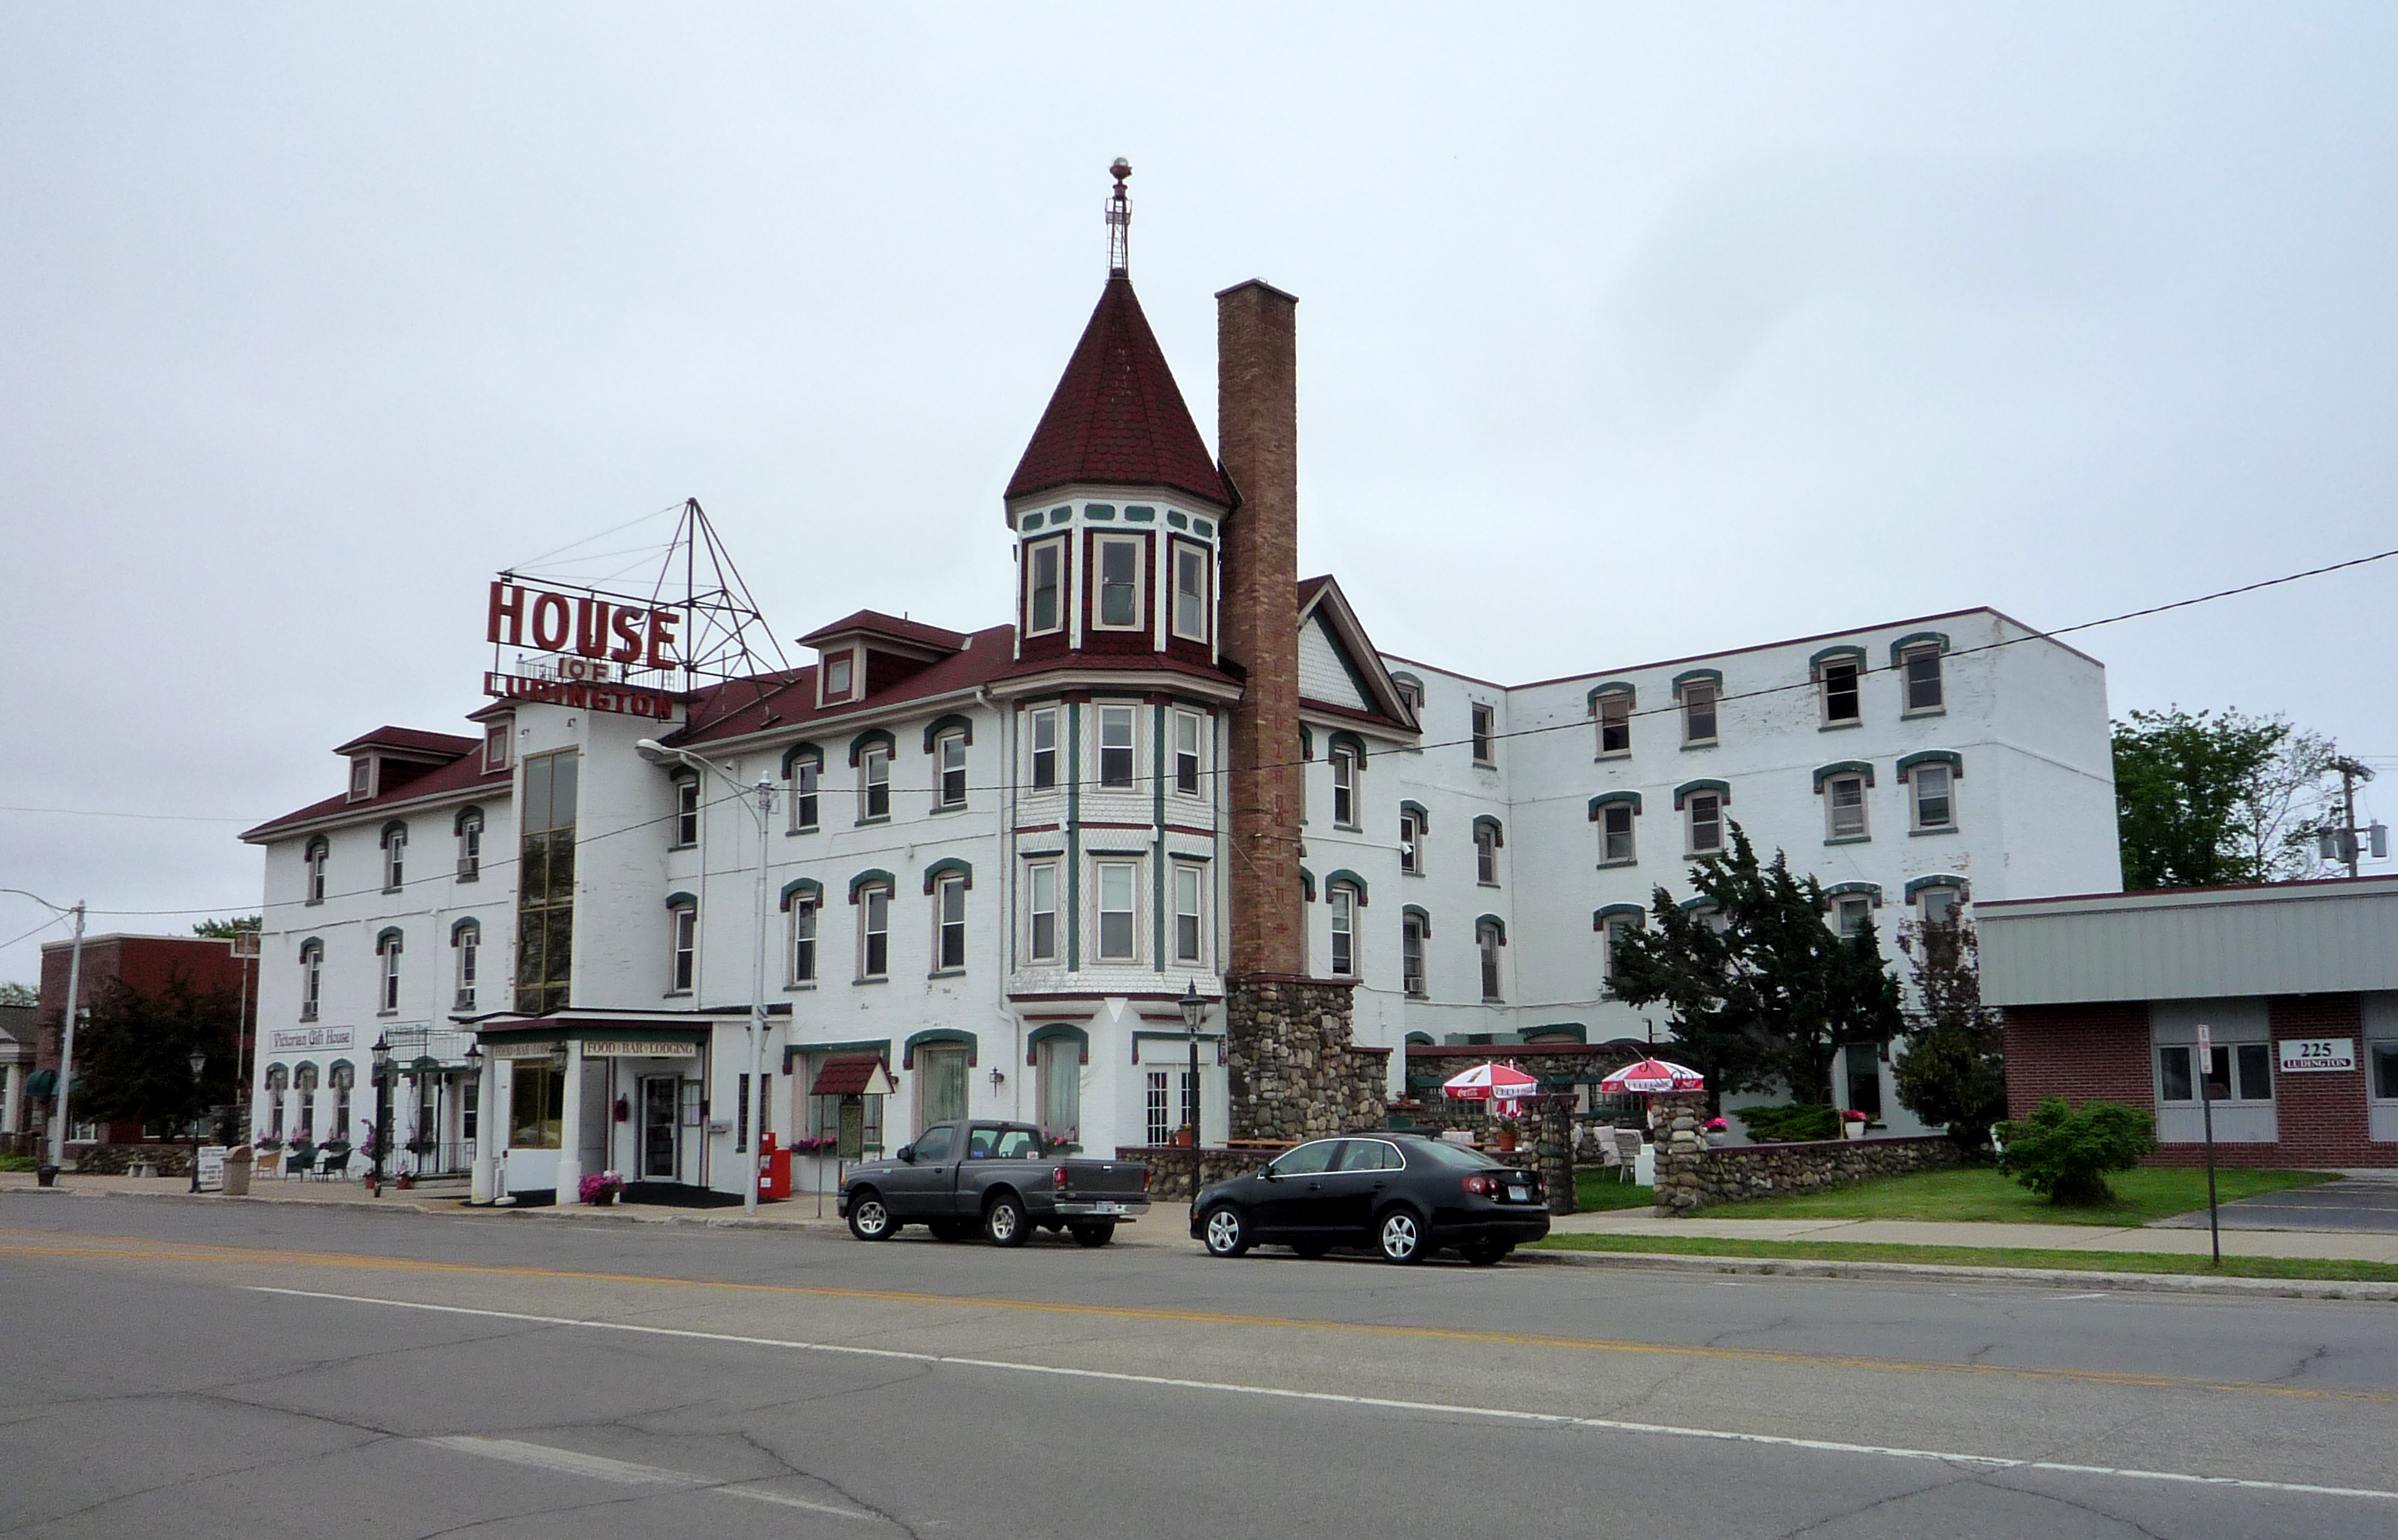 Holiday Inn Ludington Michigan | Hotels in Ludington Michigan | Holiday Inn Ludington